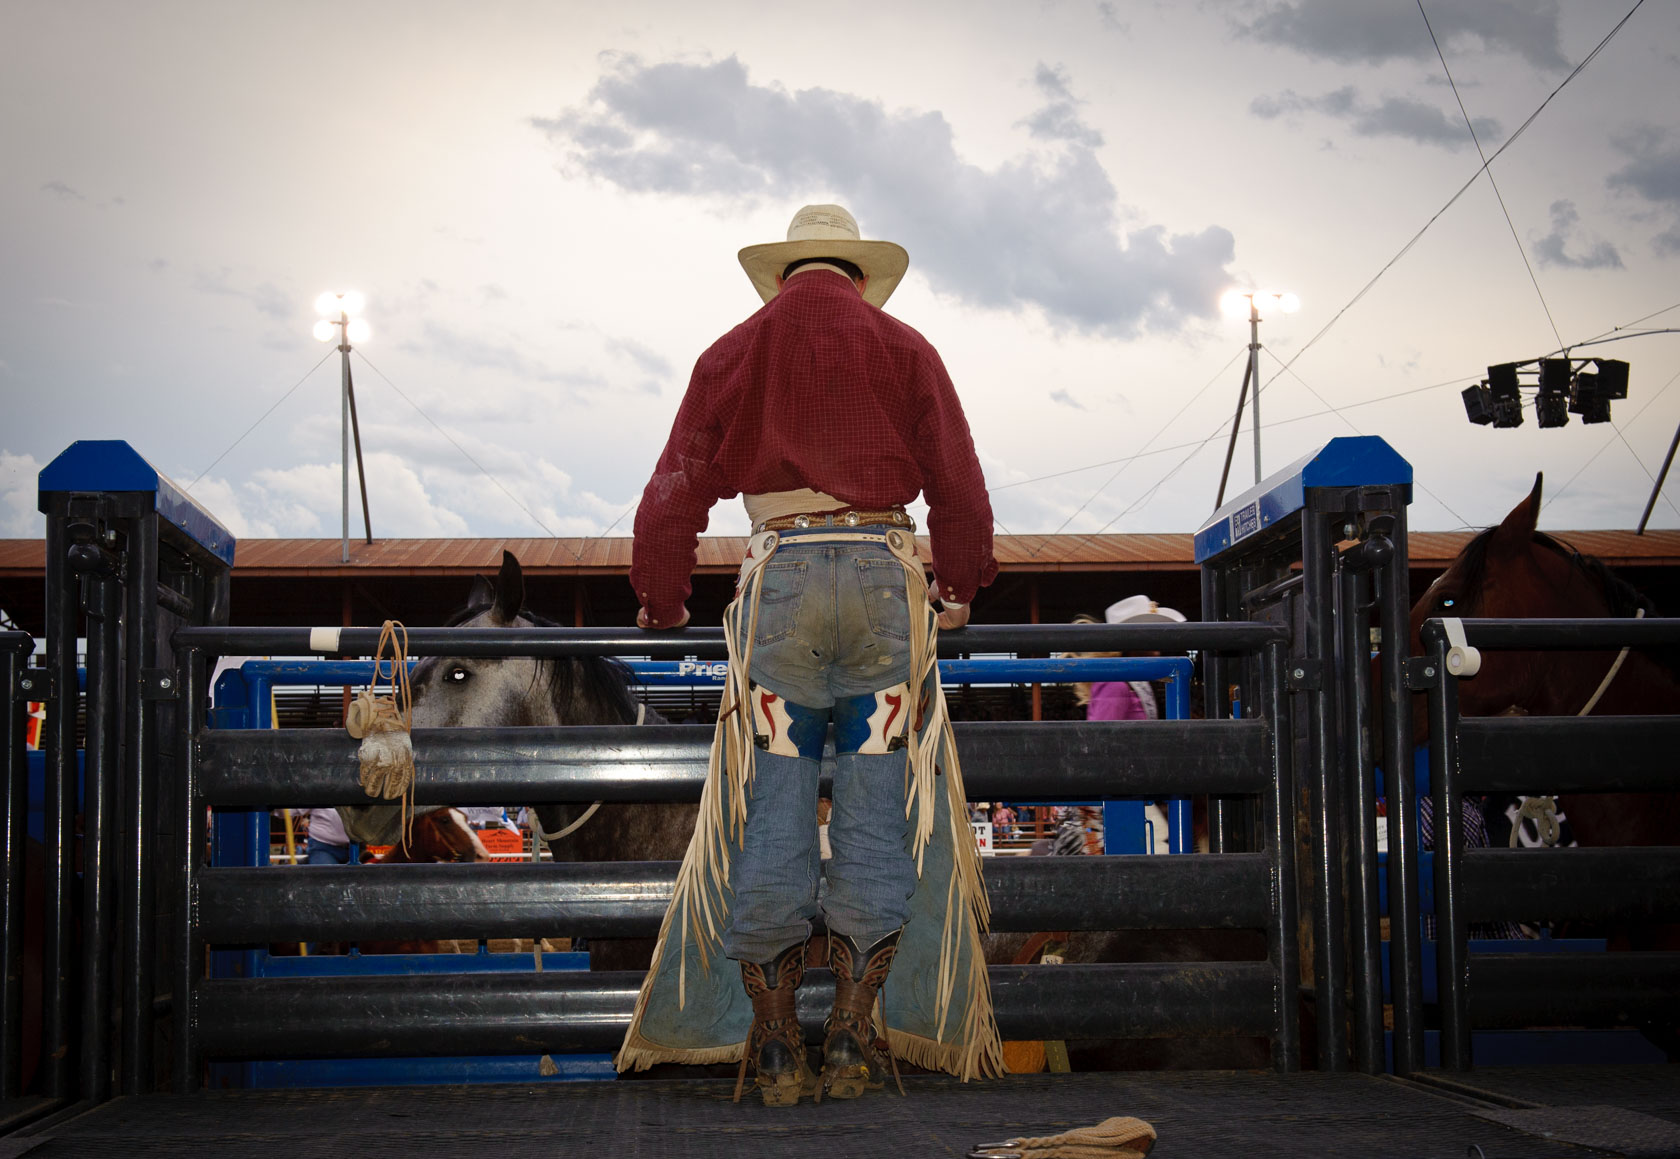 Bronc Rider, Cody, Wyoming